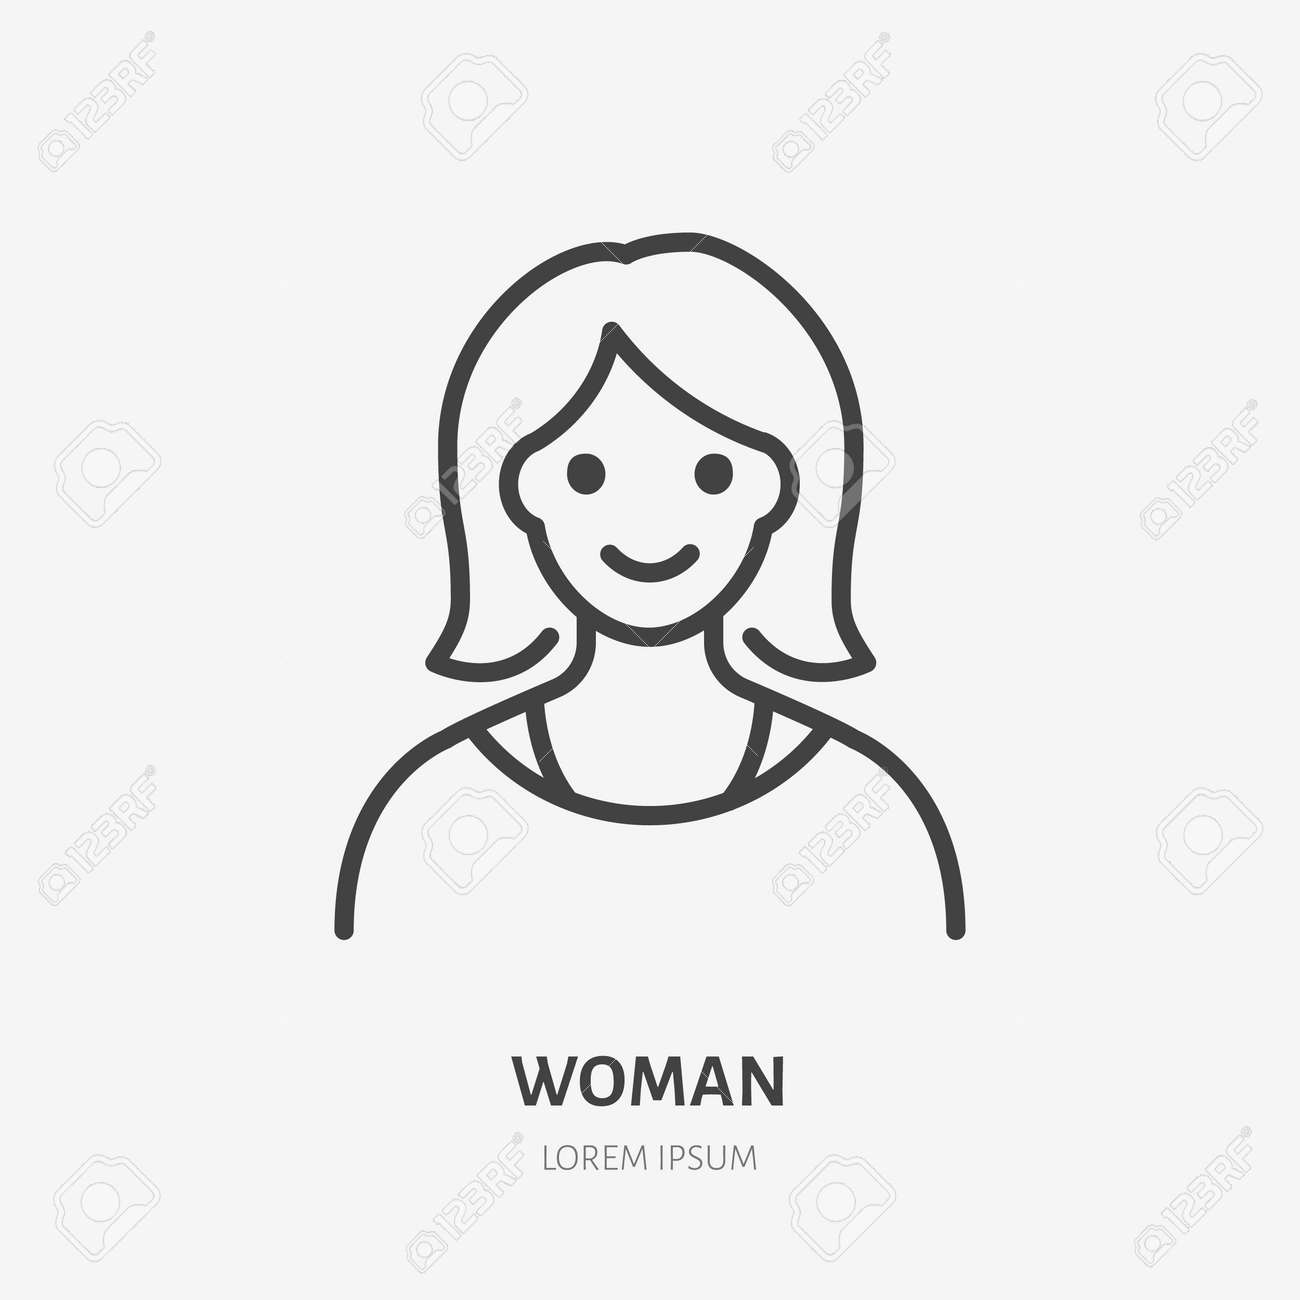 Woman flat line icon. Vector outline illustration of lady avatar. Black color thin linear sign for default simple profile. - 161710101